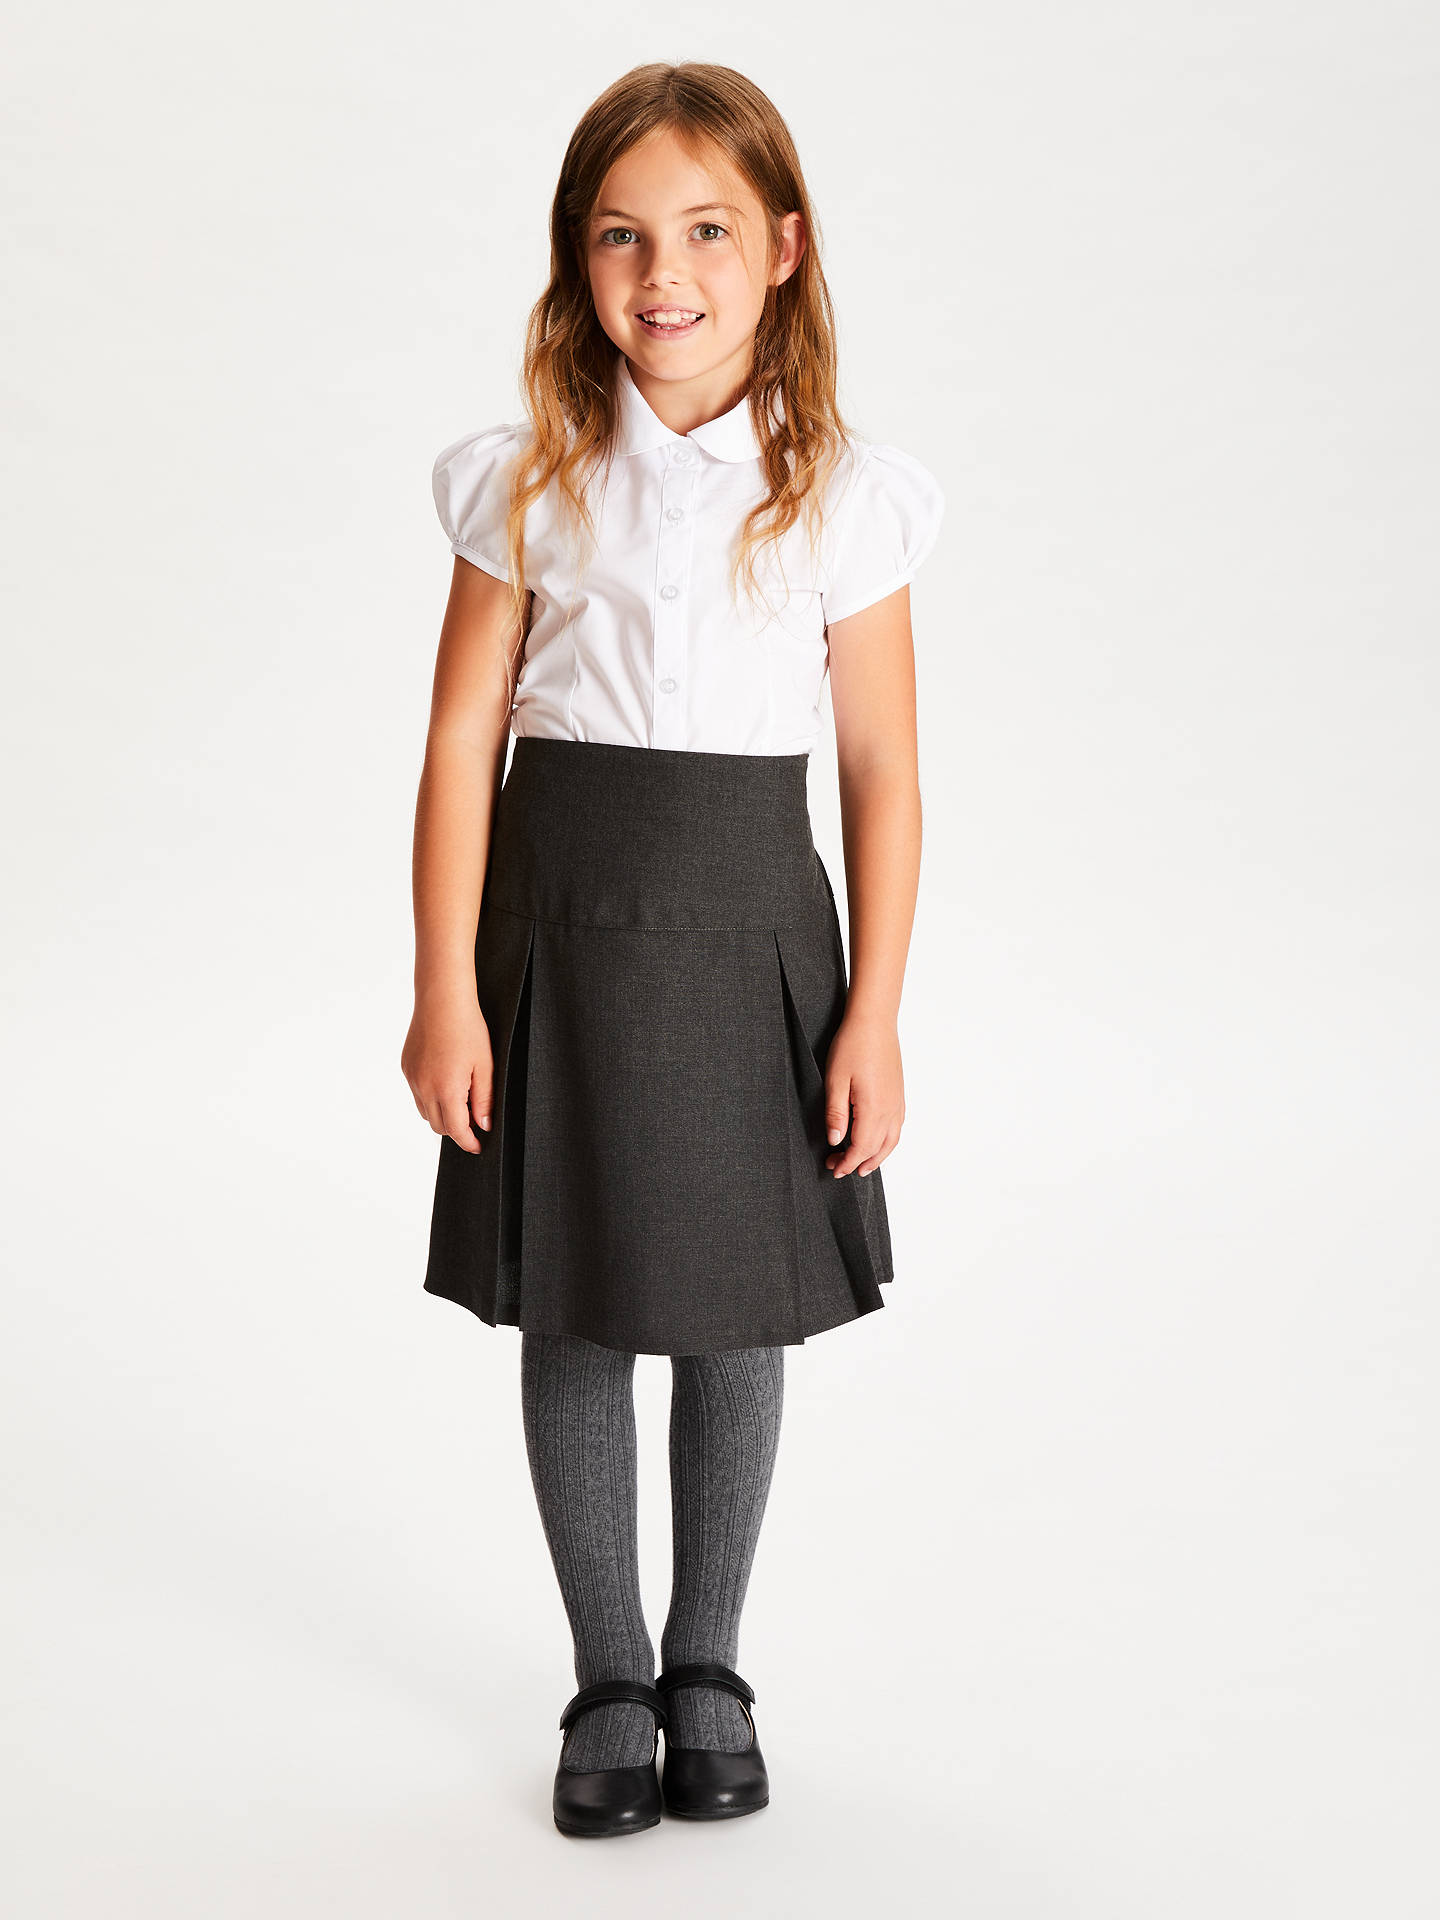 Buy John Lewis & Partners Girls' Easy Care Cap Sleeve School Blouse, Pack of 2, White, 7 years Online at johnlewis.com